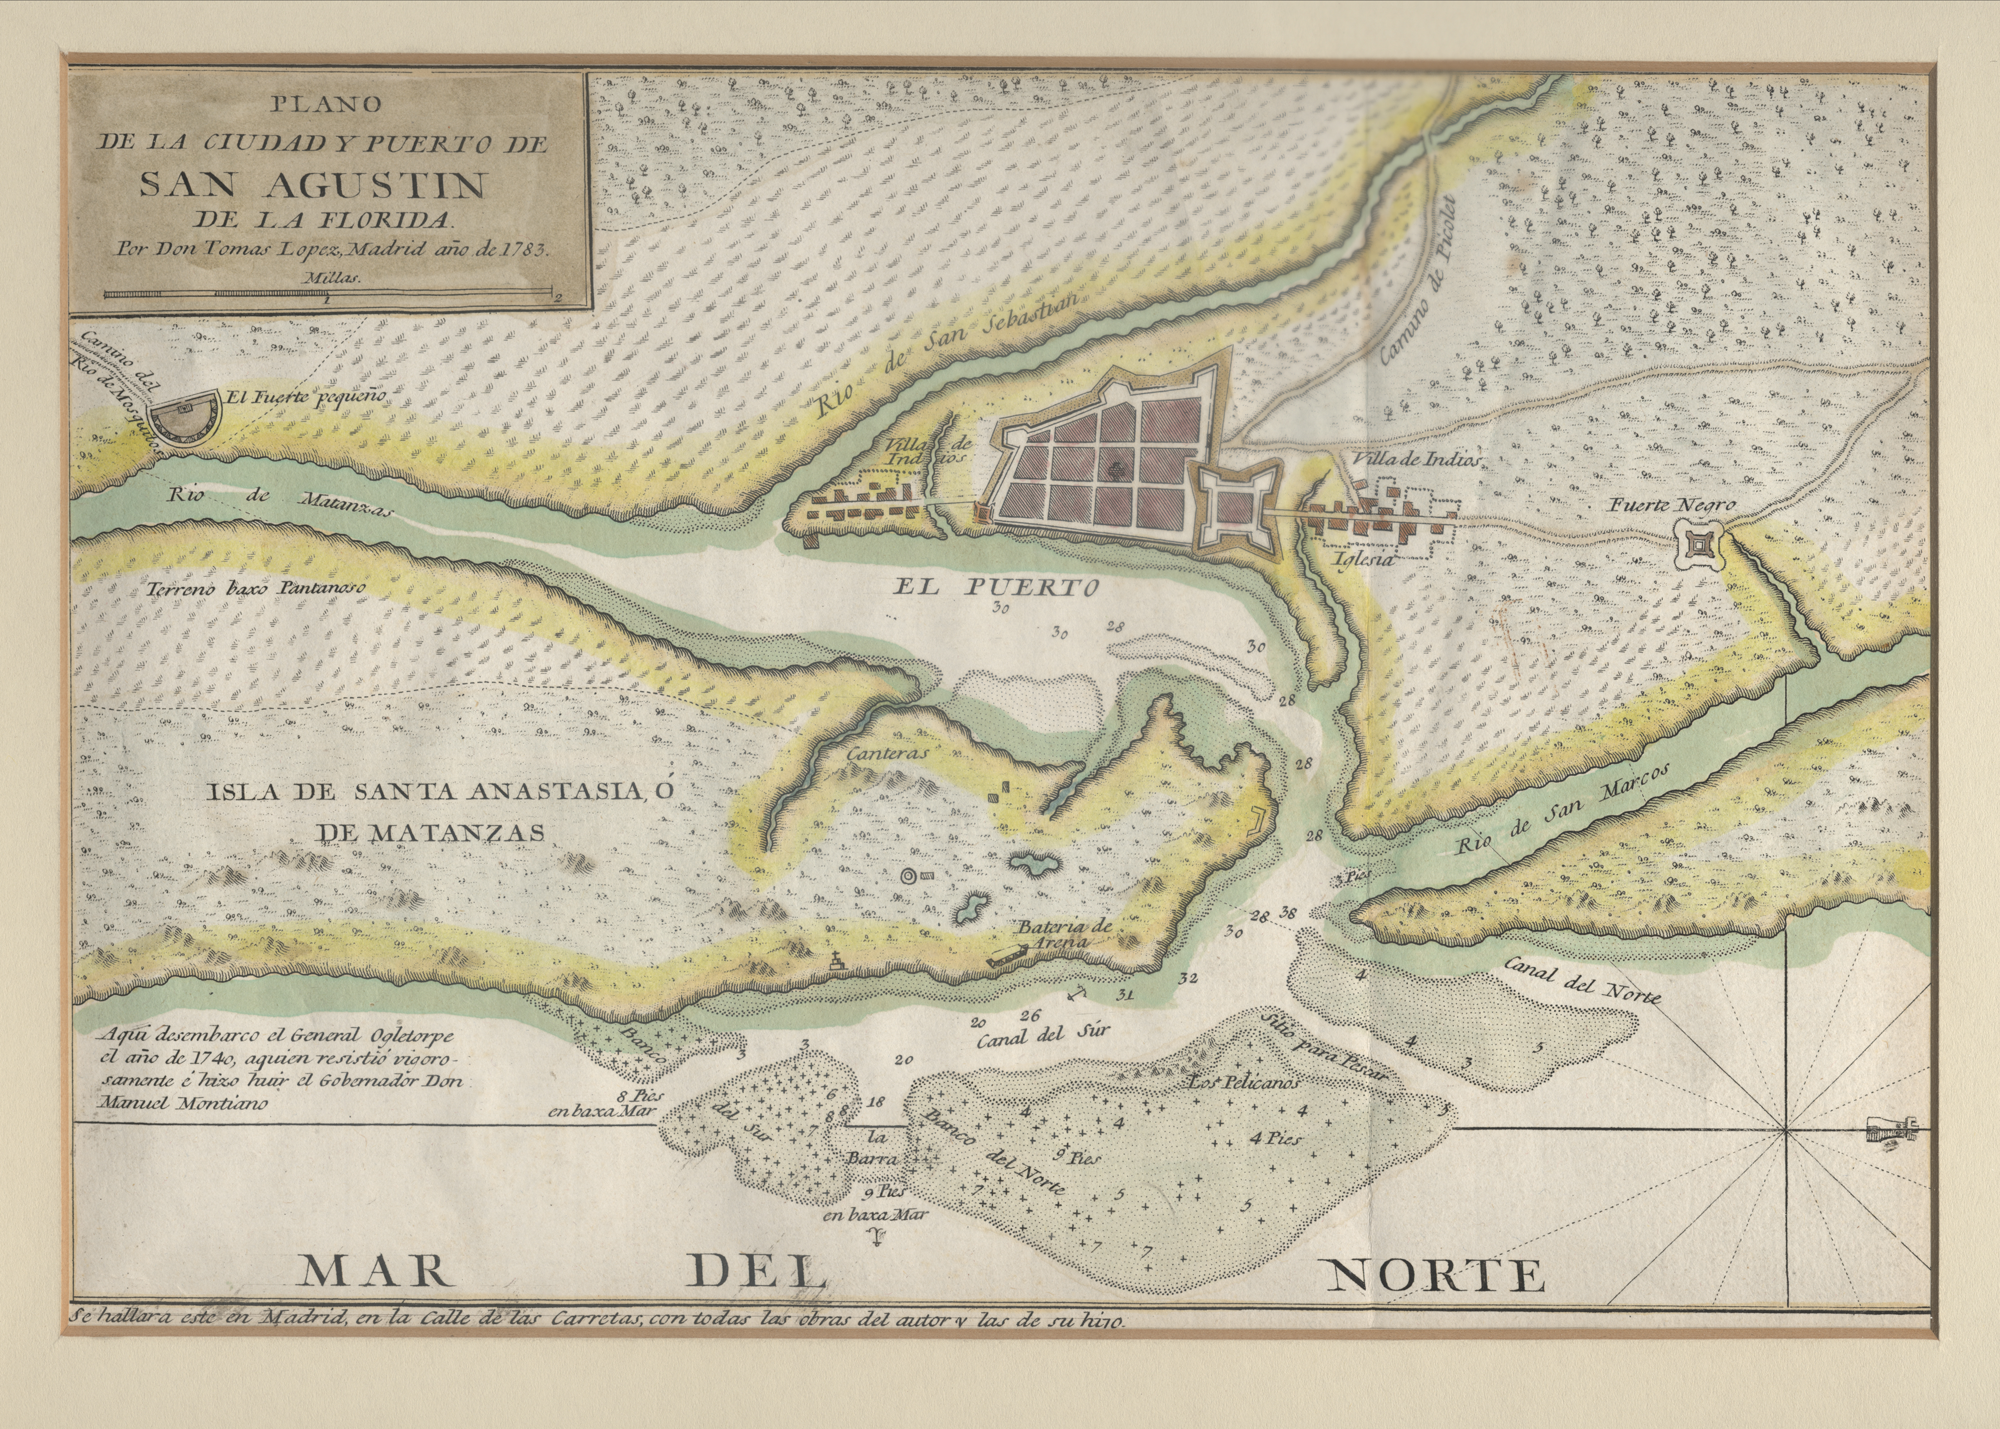 Map of st. augustine and fort mosa, courtesy of the university of florida